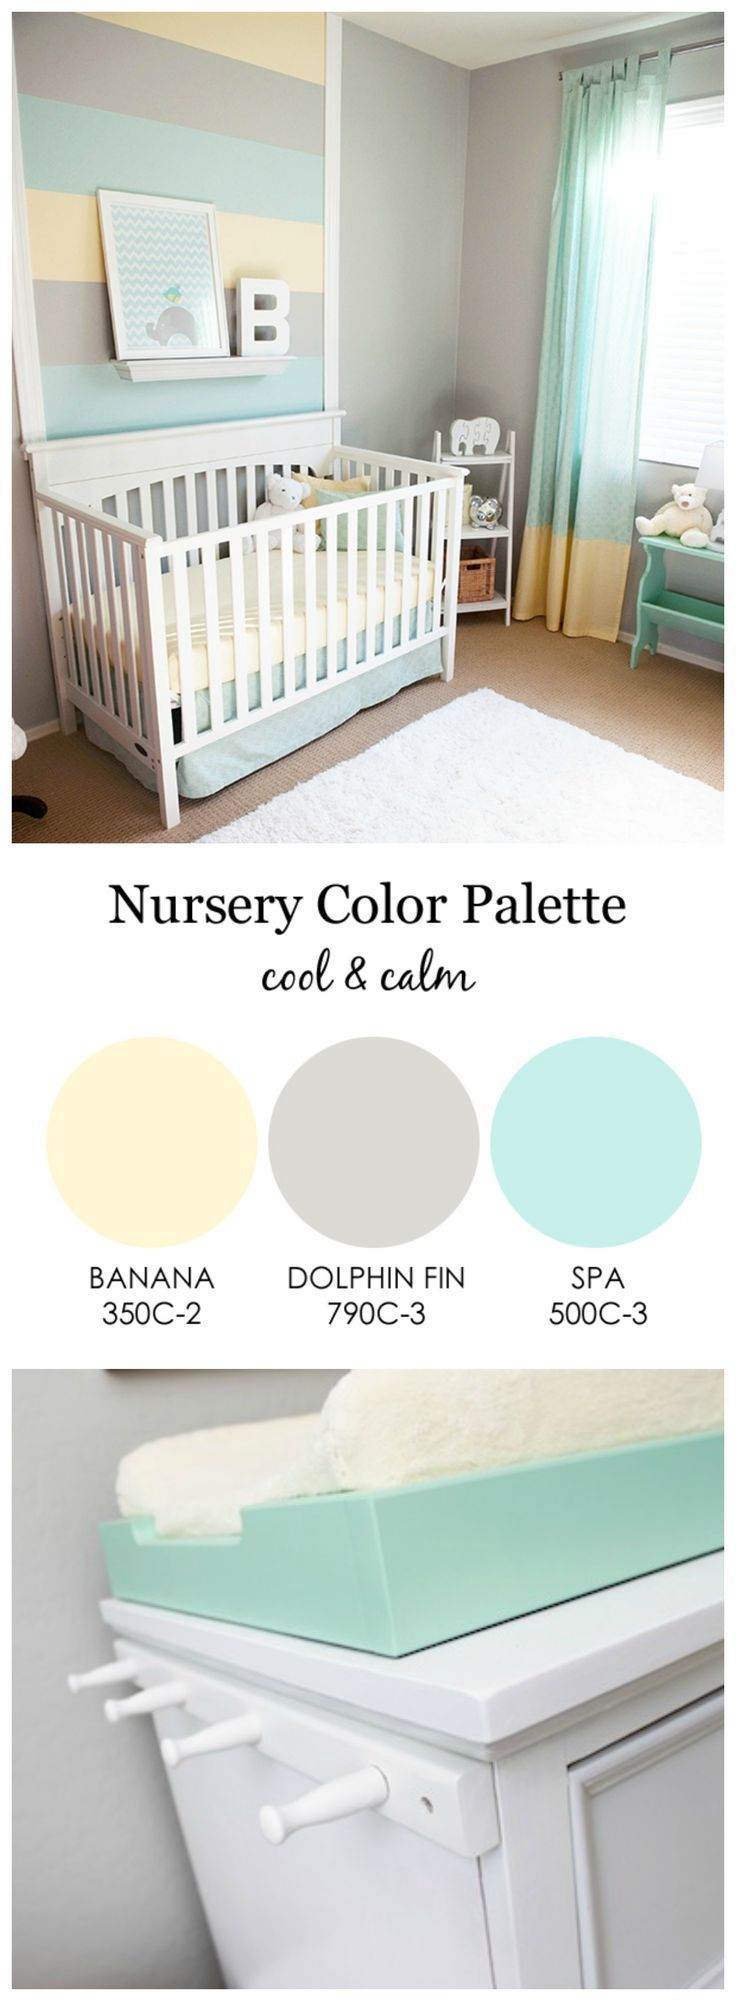 Design Reveal: Cool and Calm Nursery images